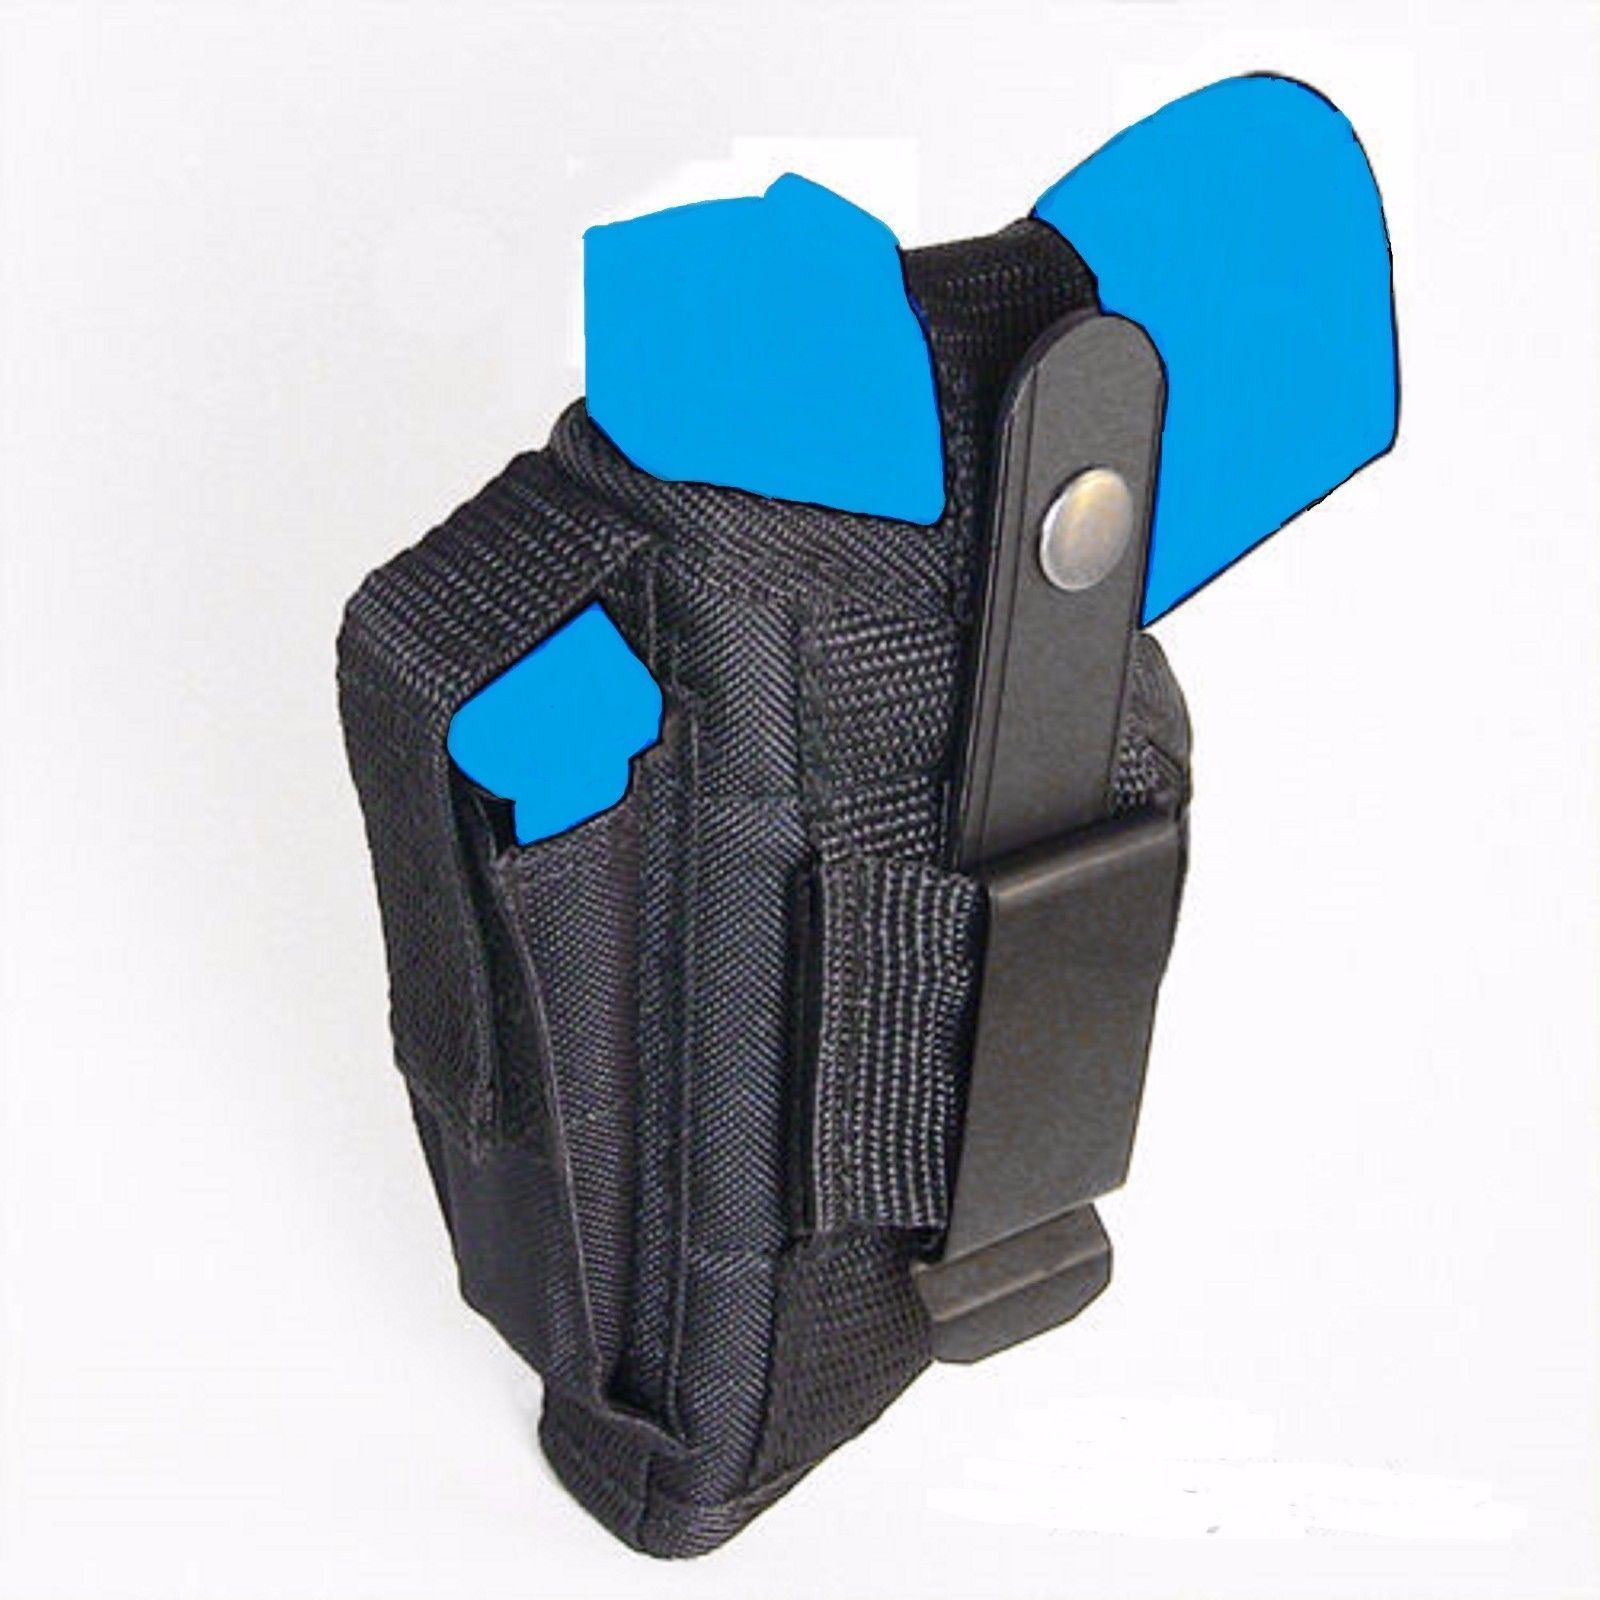 This walther p22 holster is an inside the waistband (iwb), right hand shooter holster